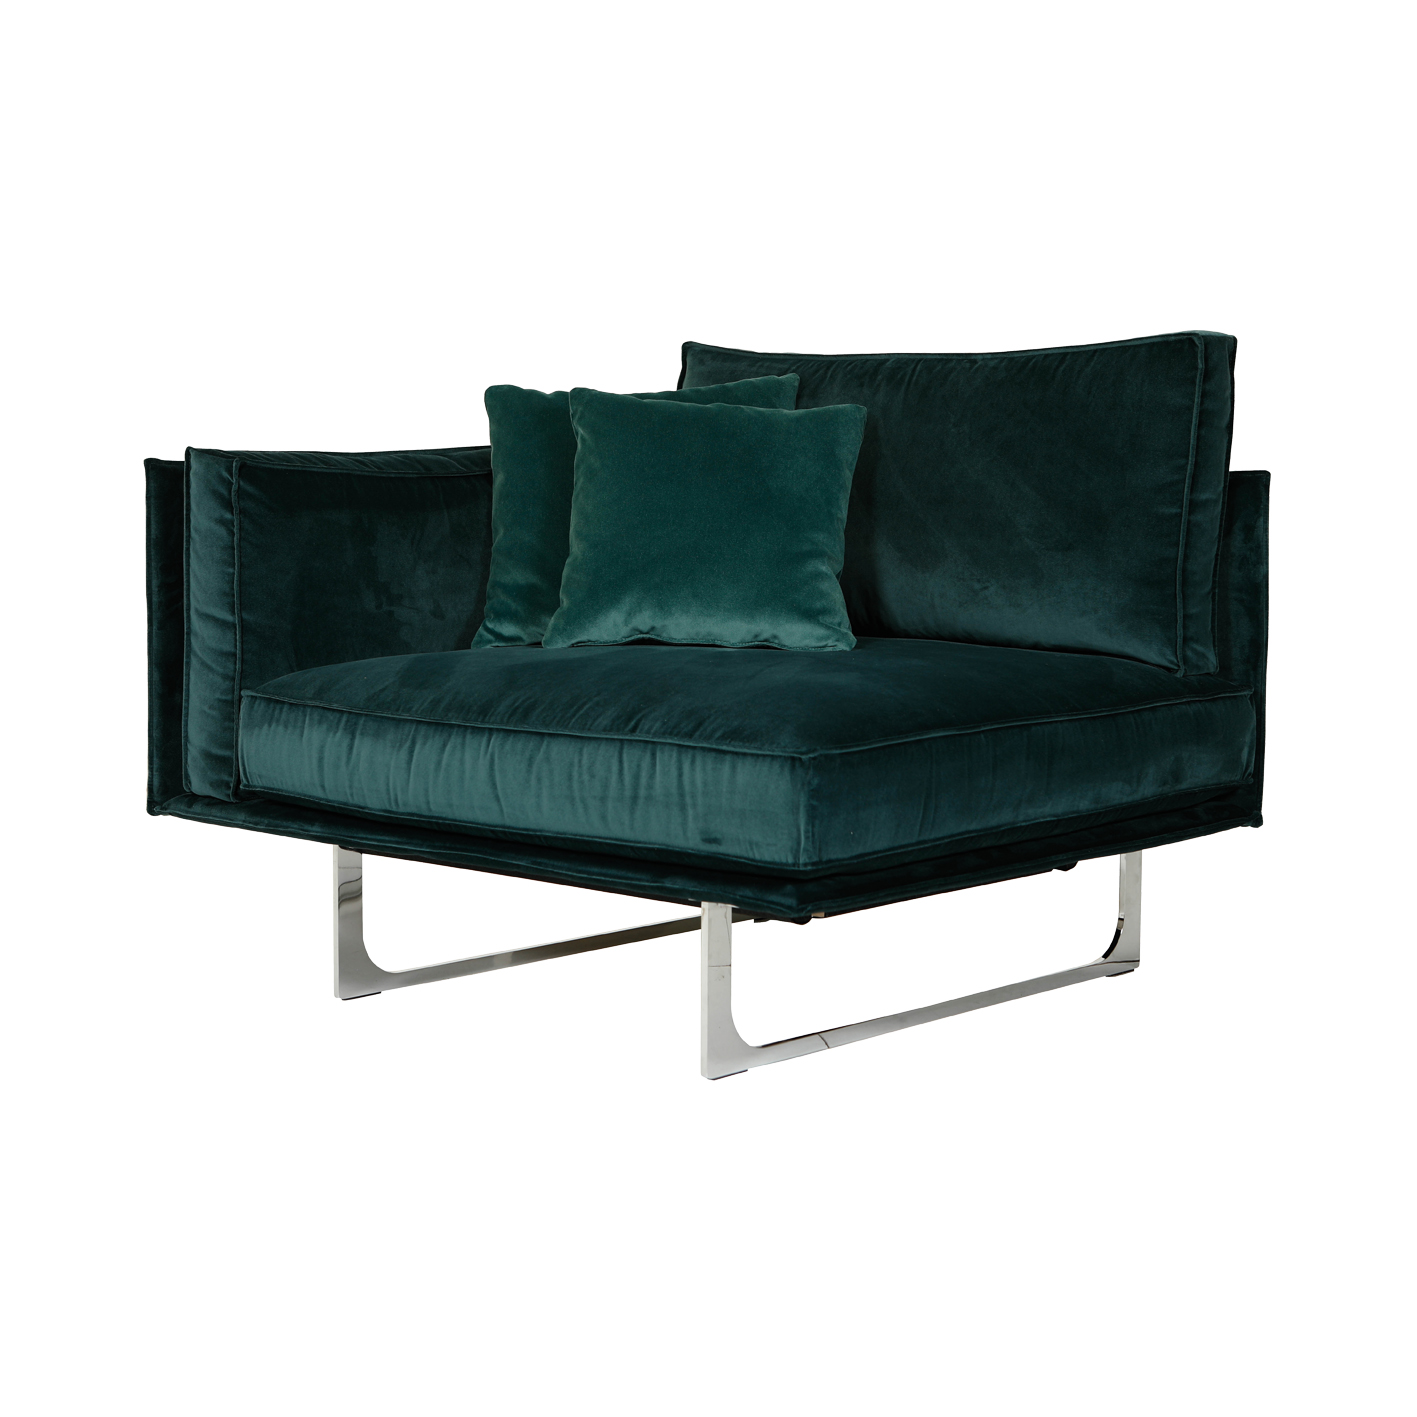 Ecksofa Baukasten Sofa 3 Ip Design Cube Air Sofa